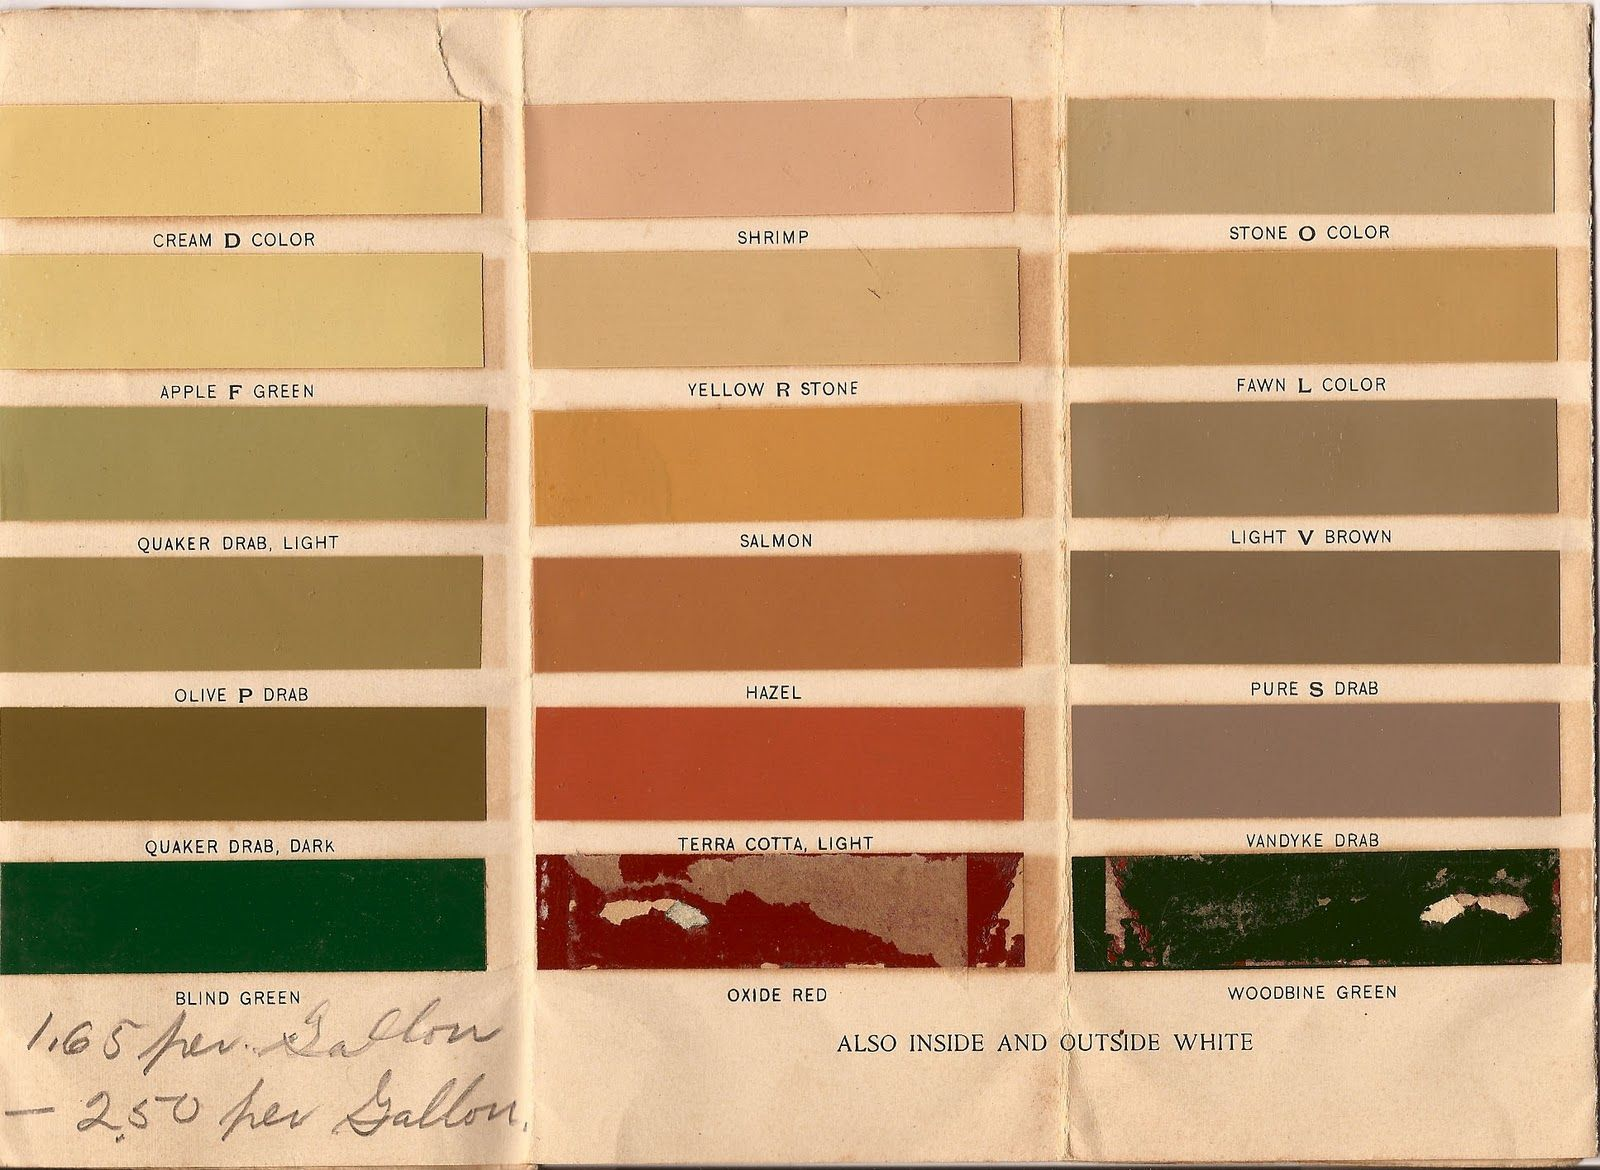 Lovely The Old House Blog: Historic Paint Colors For The Victorian Home: Part One